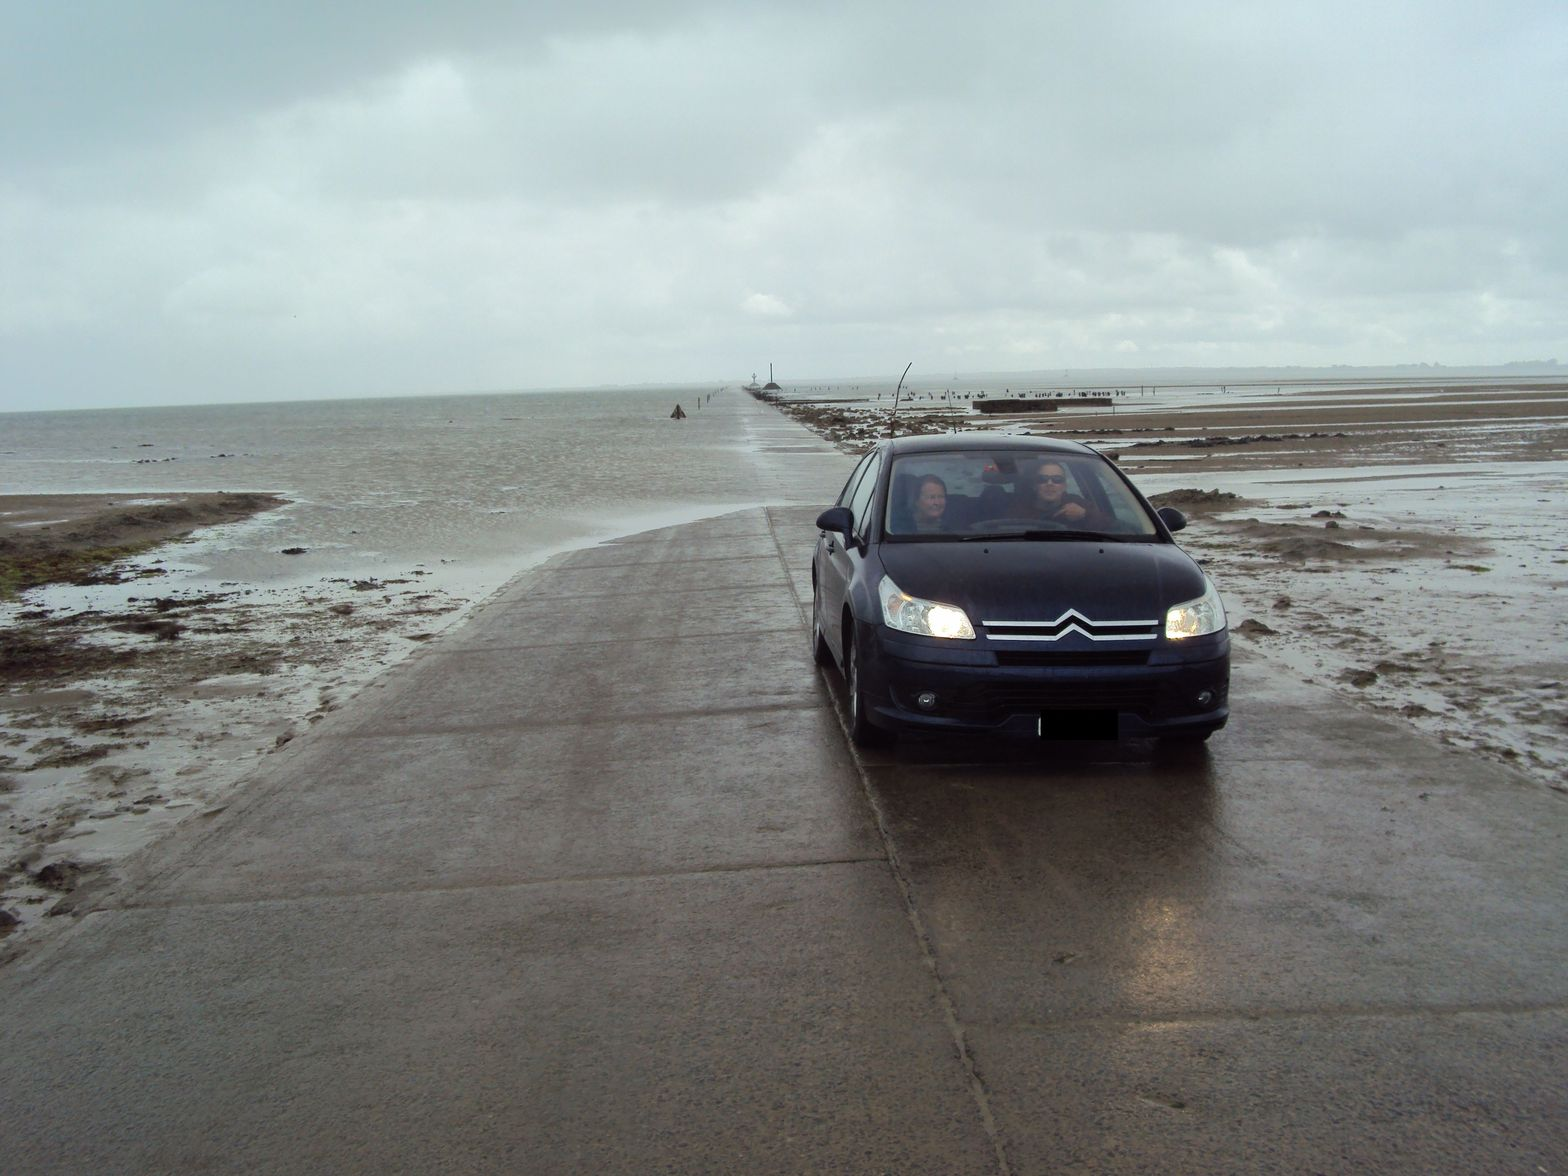 Citroen C4(france) Route Immergeable Du Gois, Vendee